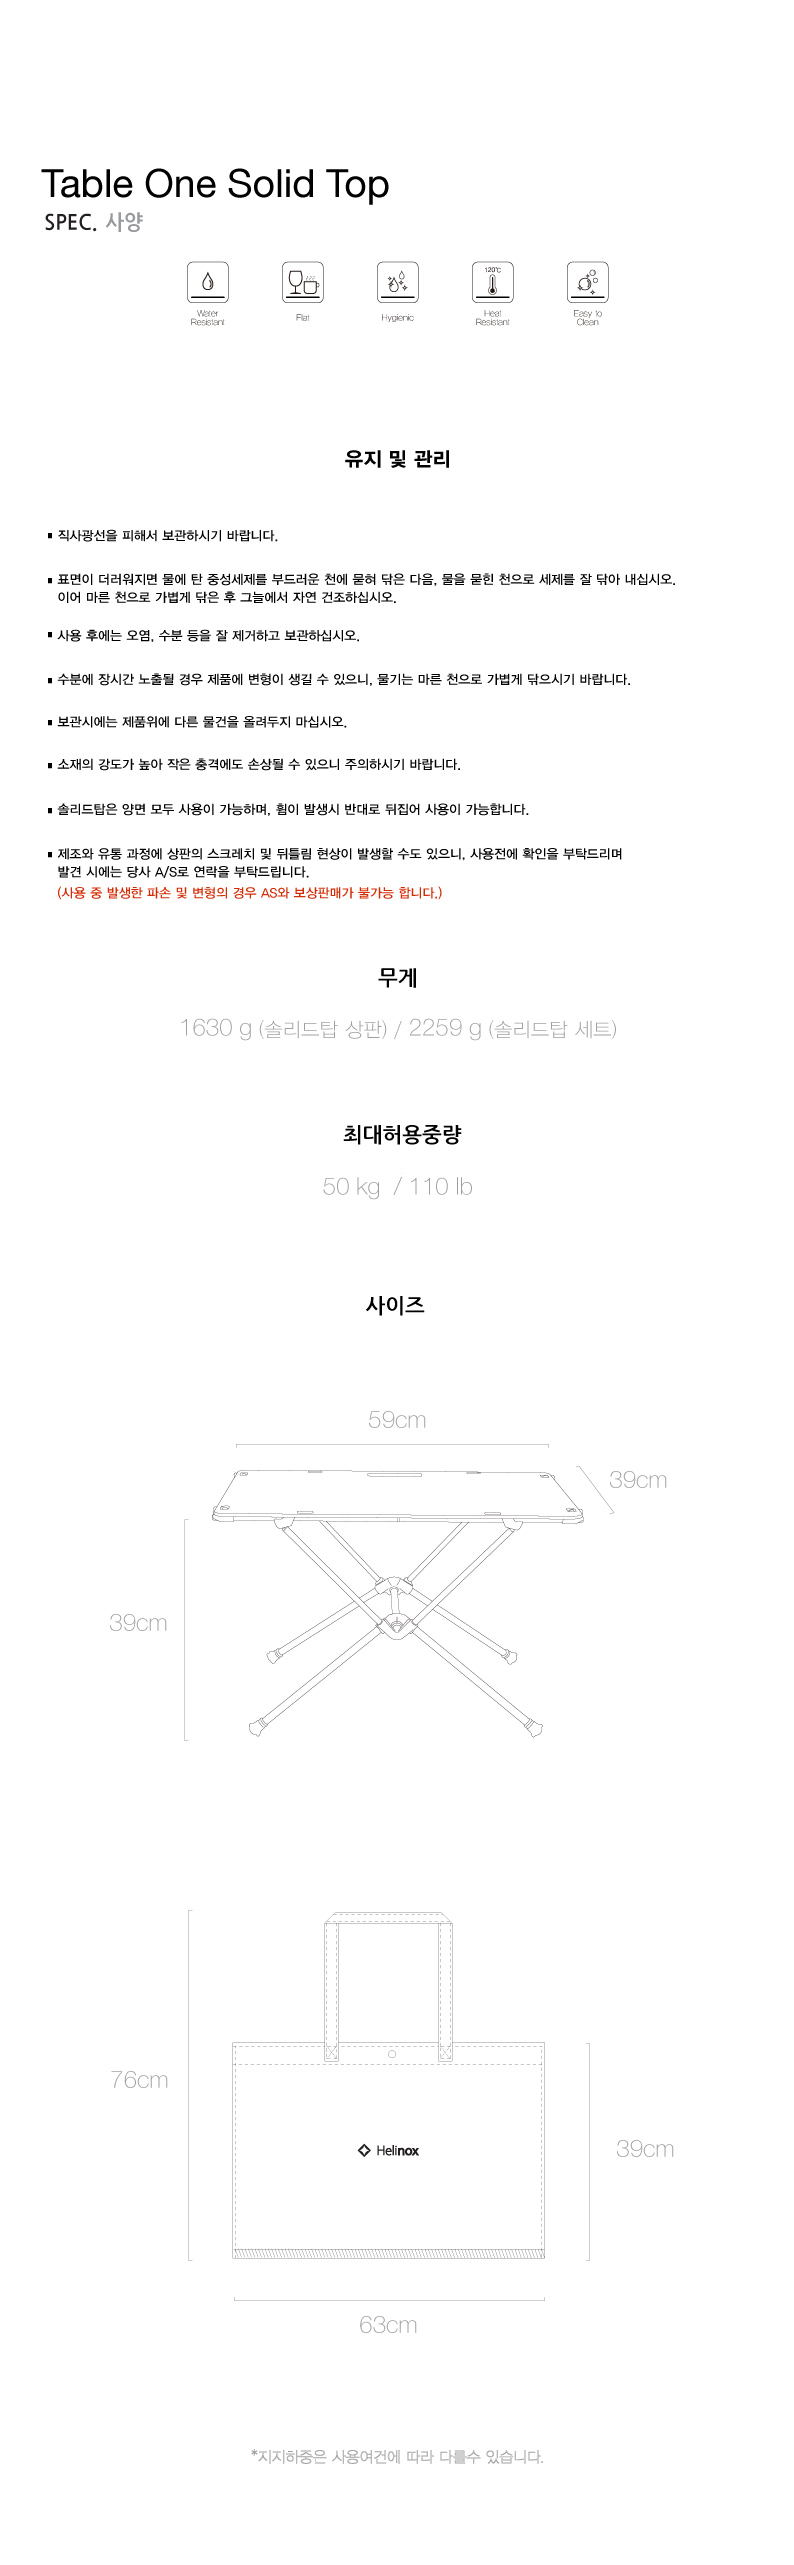 20170516-table-one-solid-top---spec.jpg